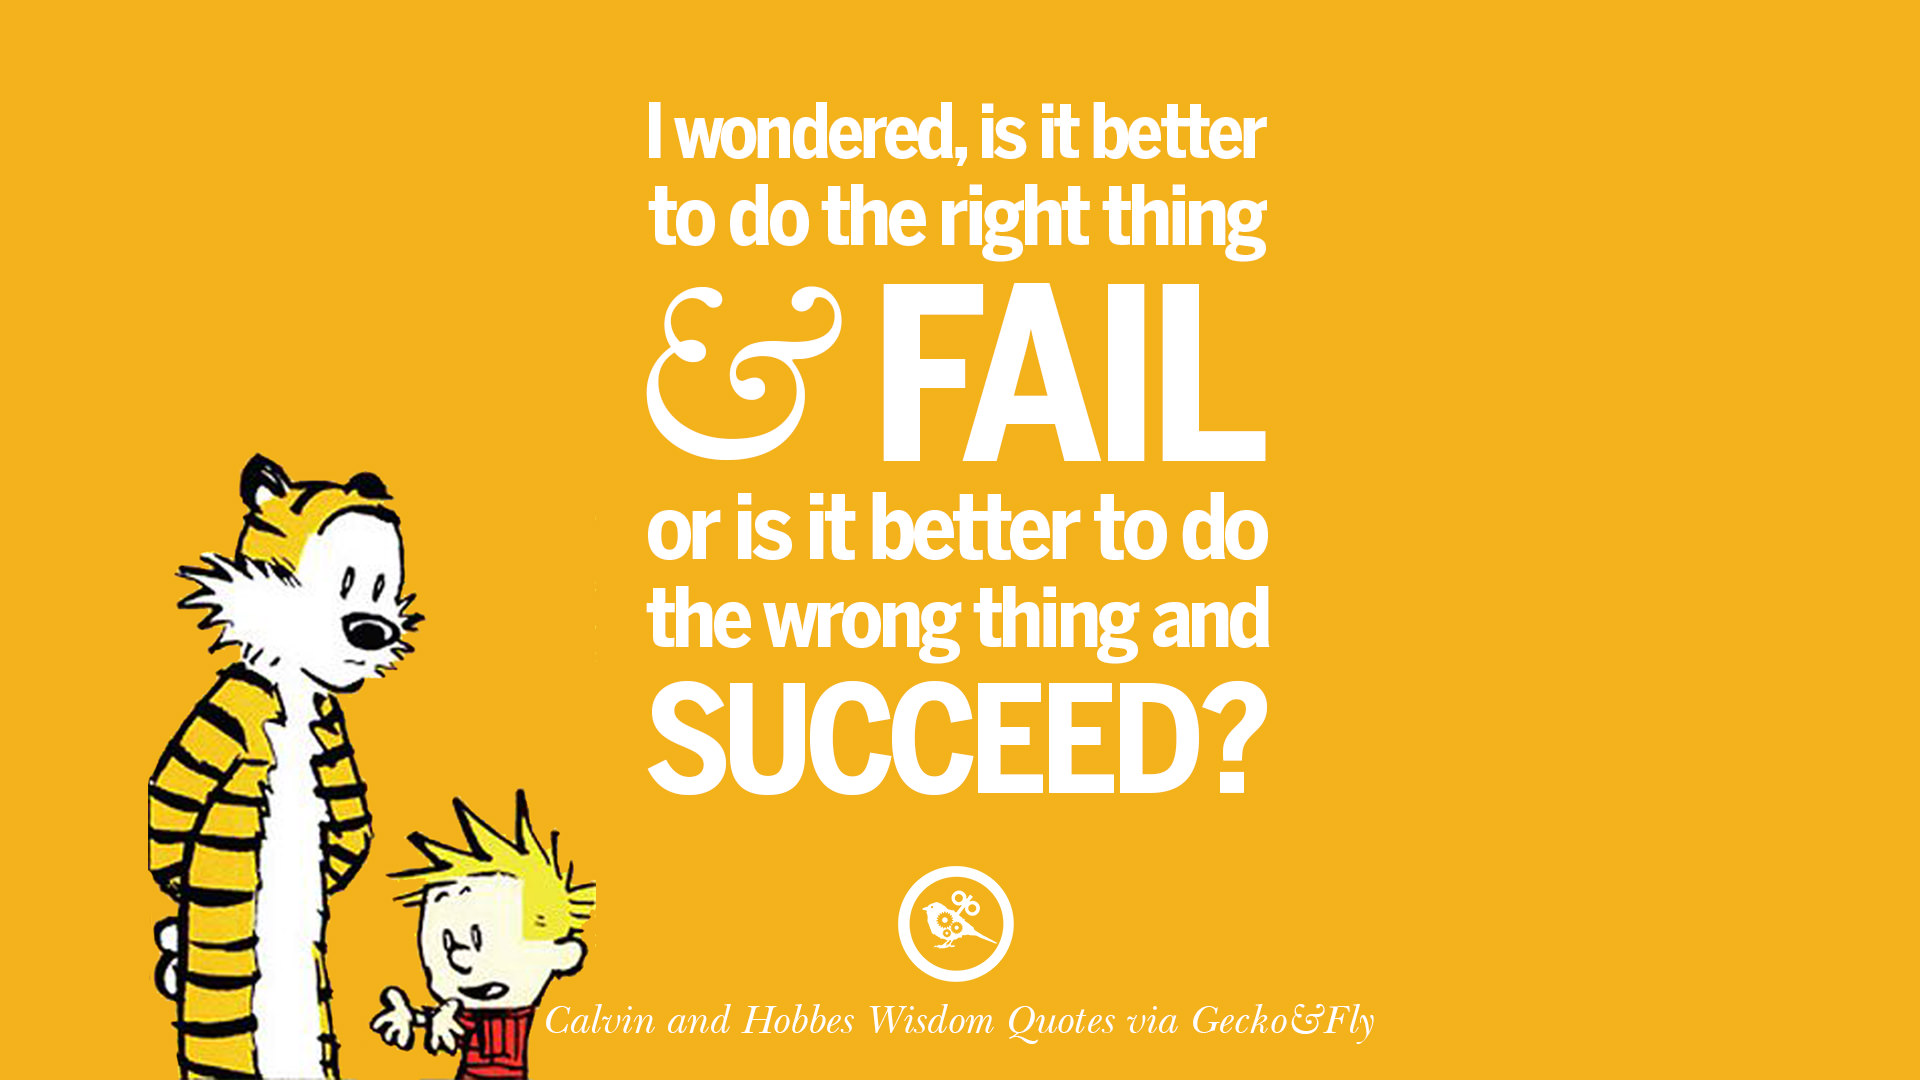 Wisdom Quotes 10 Calvin And Hobbes Words Of Wisdom Quotes And Wise Sayings